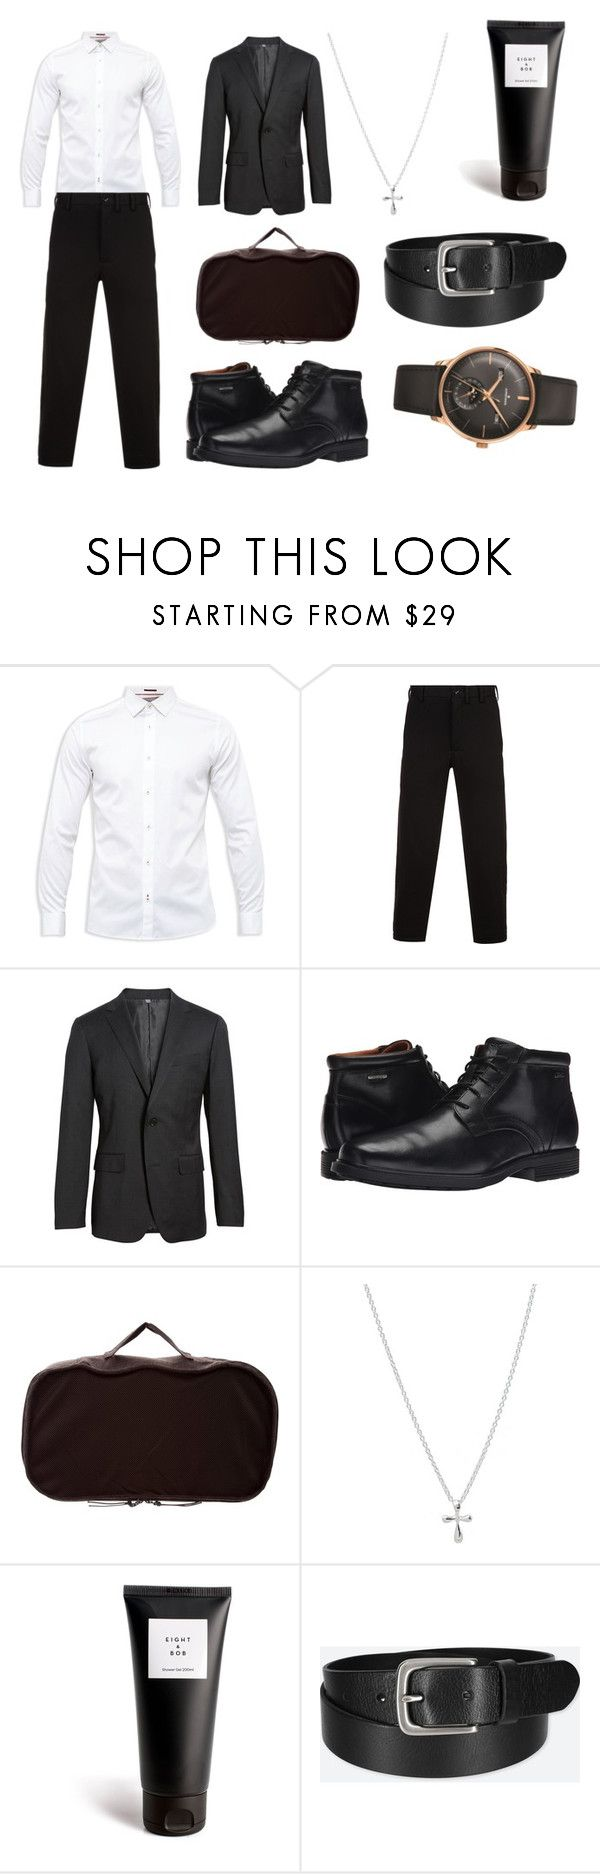 """Prom with Damian"" by racheldenisnefeke ❤ liked on Polyvore featuring Ted Baker, Yohji Yamamoto, Bonobos, Rockport, Berluti, Eight & Bob, Uniqlo, Longines, men's fashion and menswear"